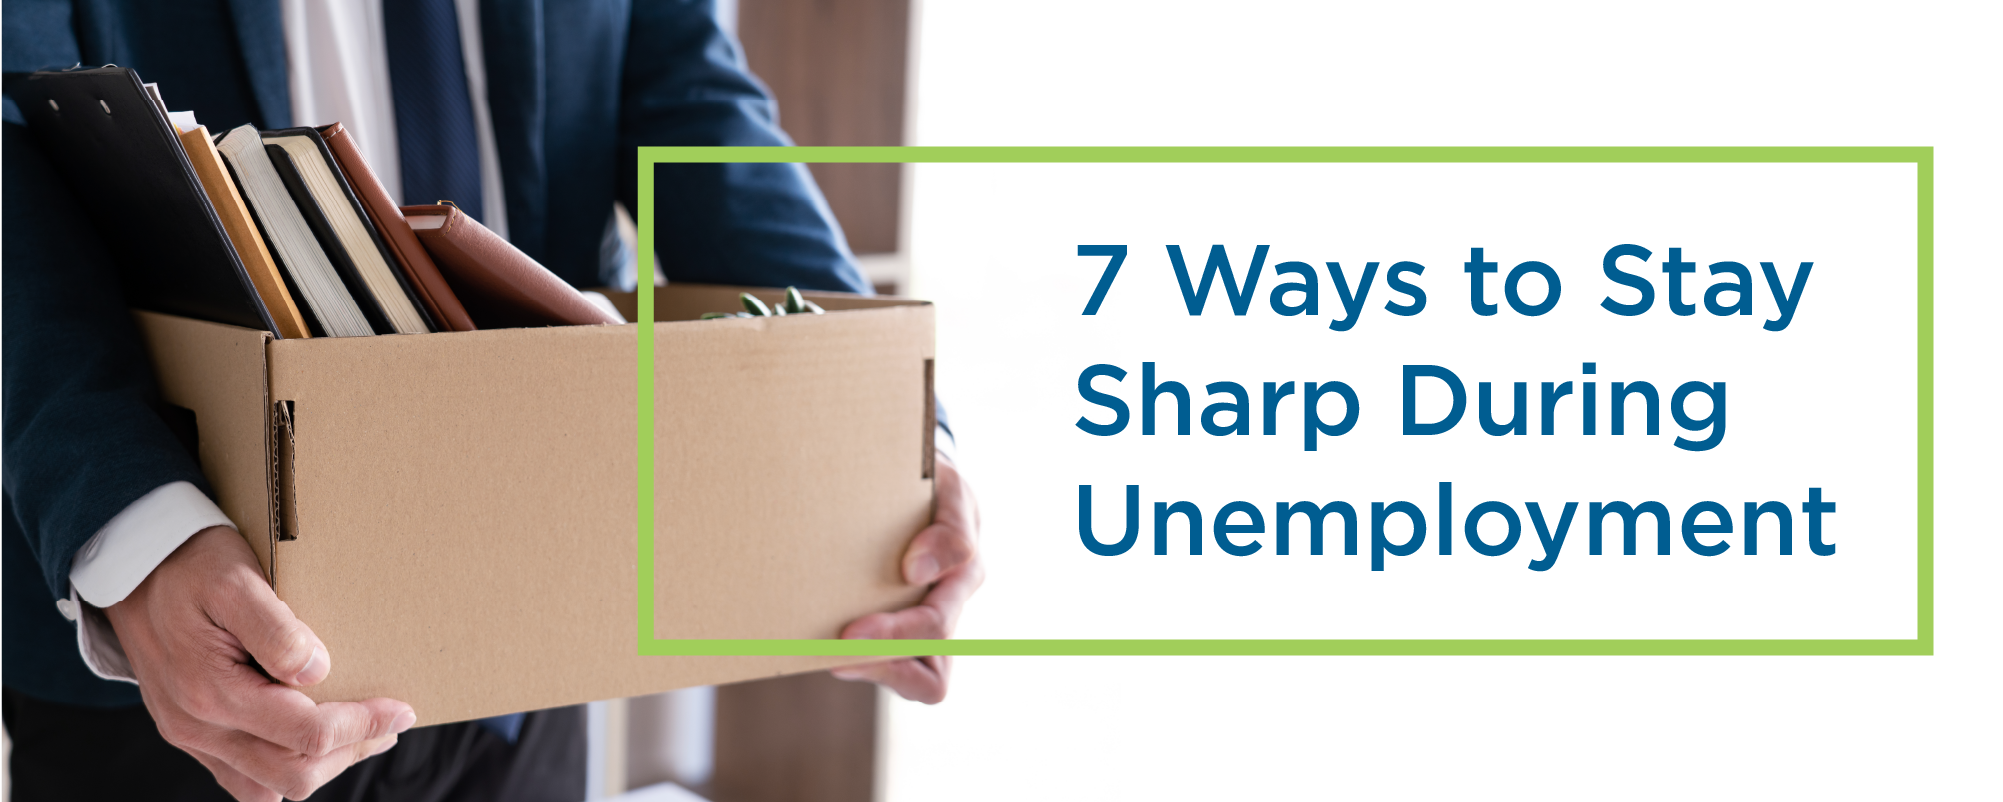 7 ways to stay sharp during unemployment.